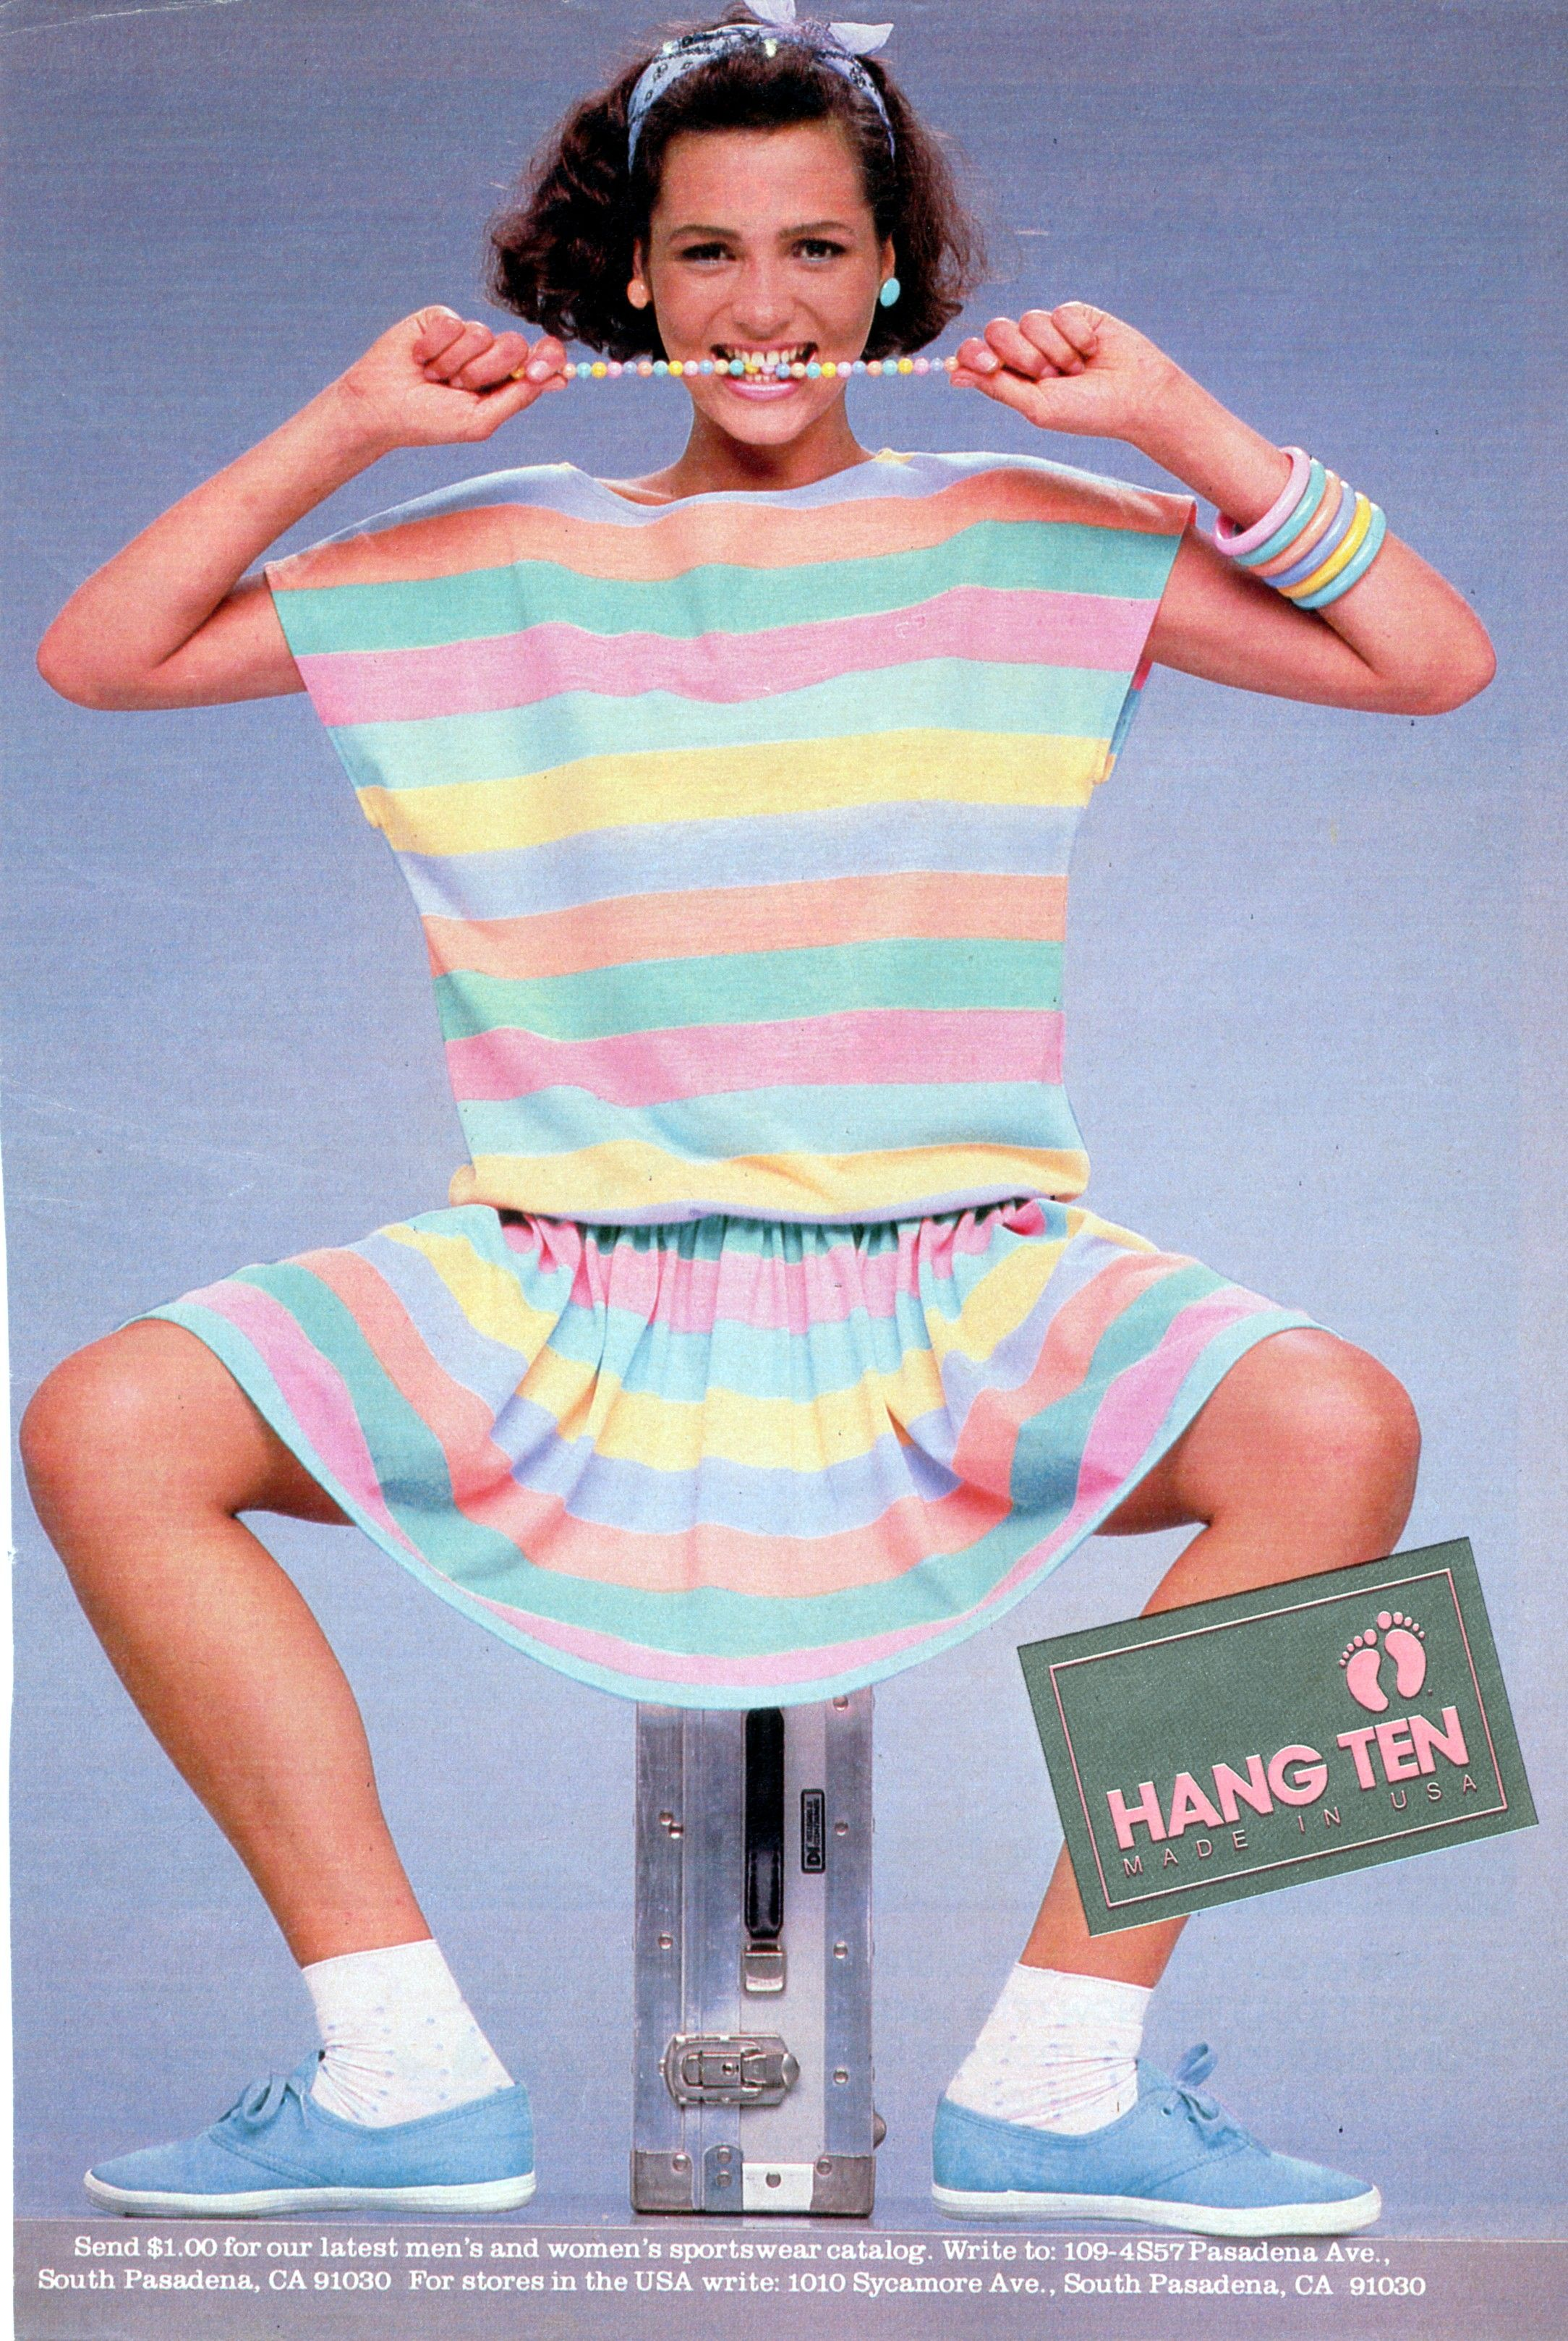 80s Vintage Clothing In The Uk Just Got Easier: Hang Ten Pastel Dress - 1984